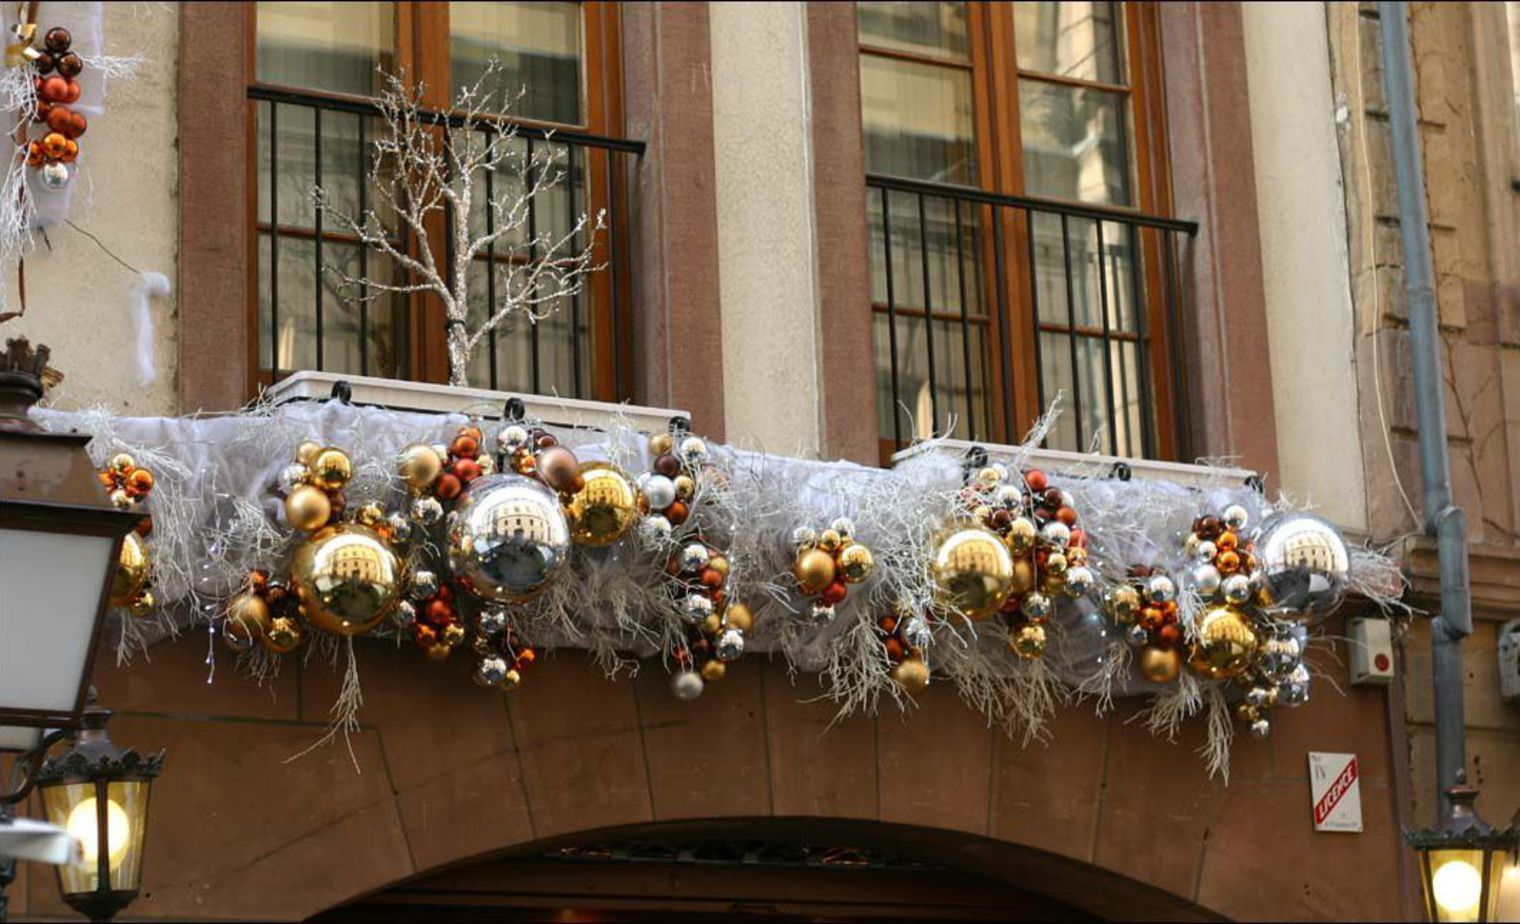 D coration noel exterieur balcon exemples d 39 am nagements for Decoration noel exterieur d occasion